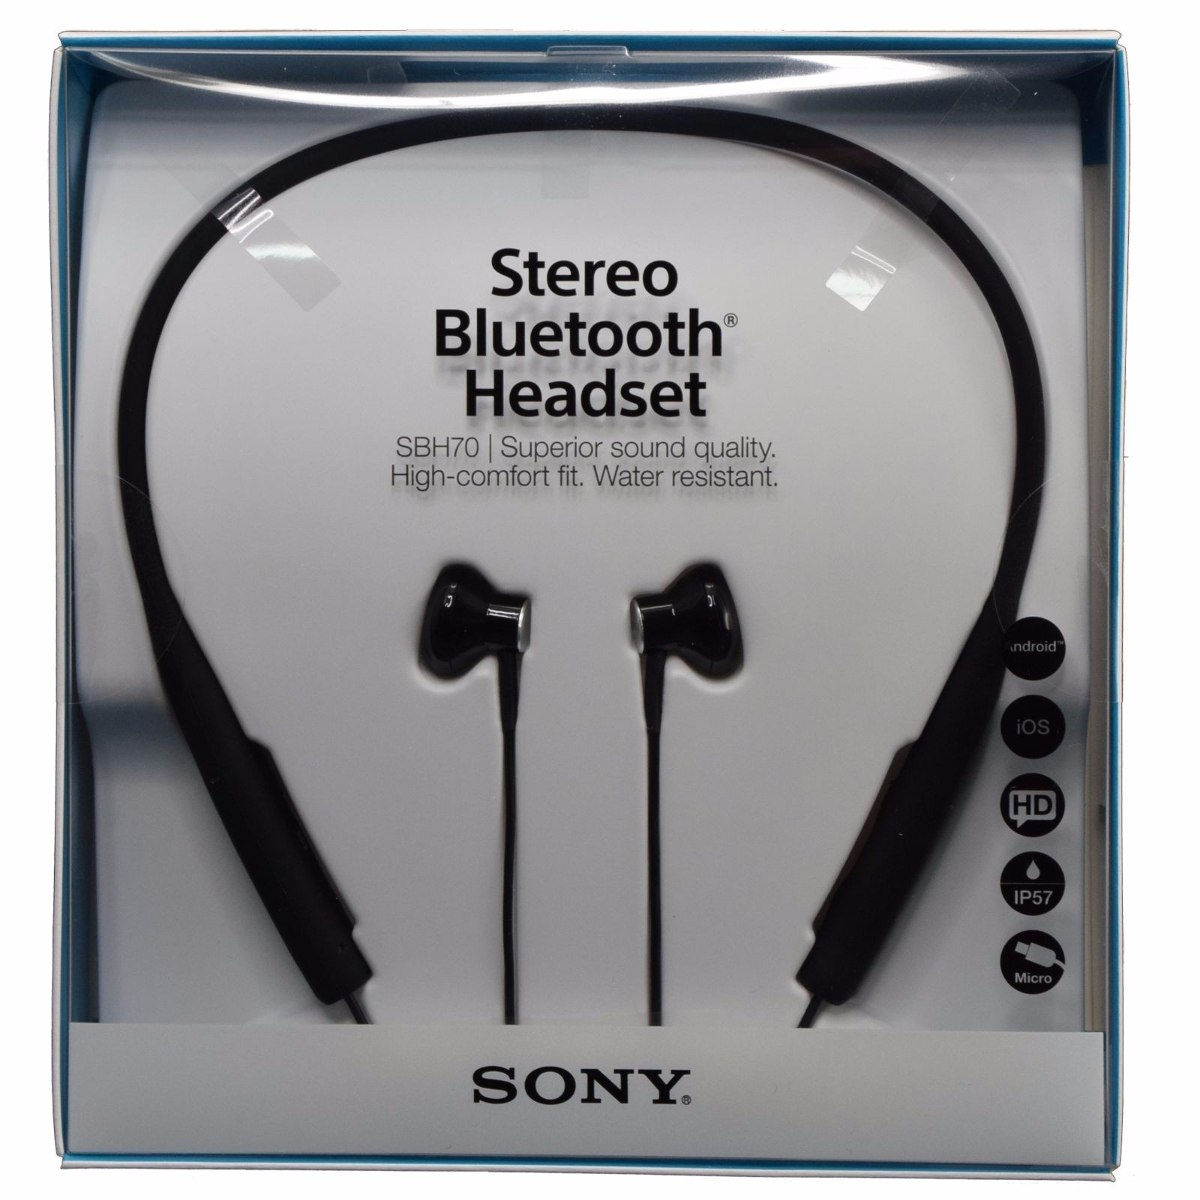 Manos Libres Bluetooth Mercadolibre Manos Libres Bluetooth Sony Sbh70 Waterproof Ip57 Negro